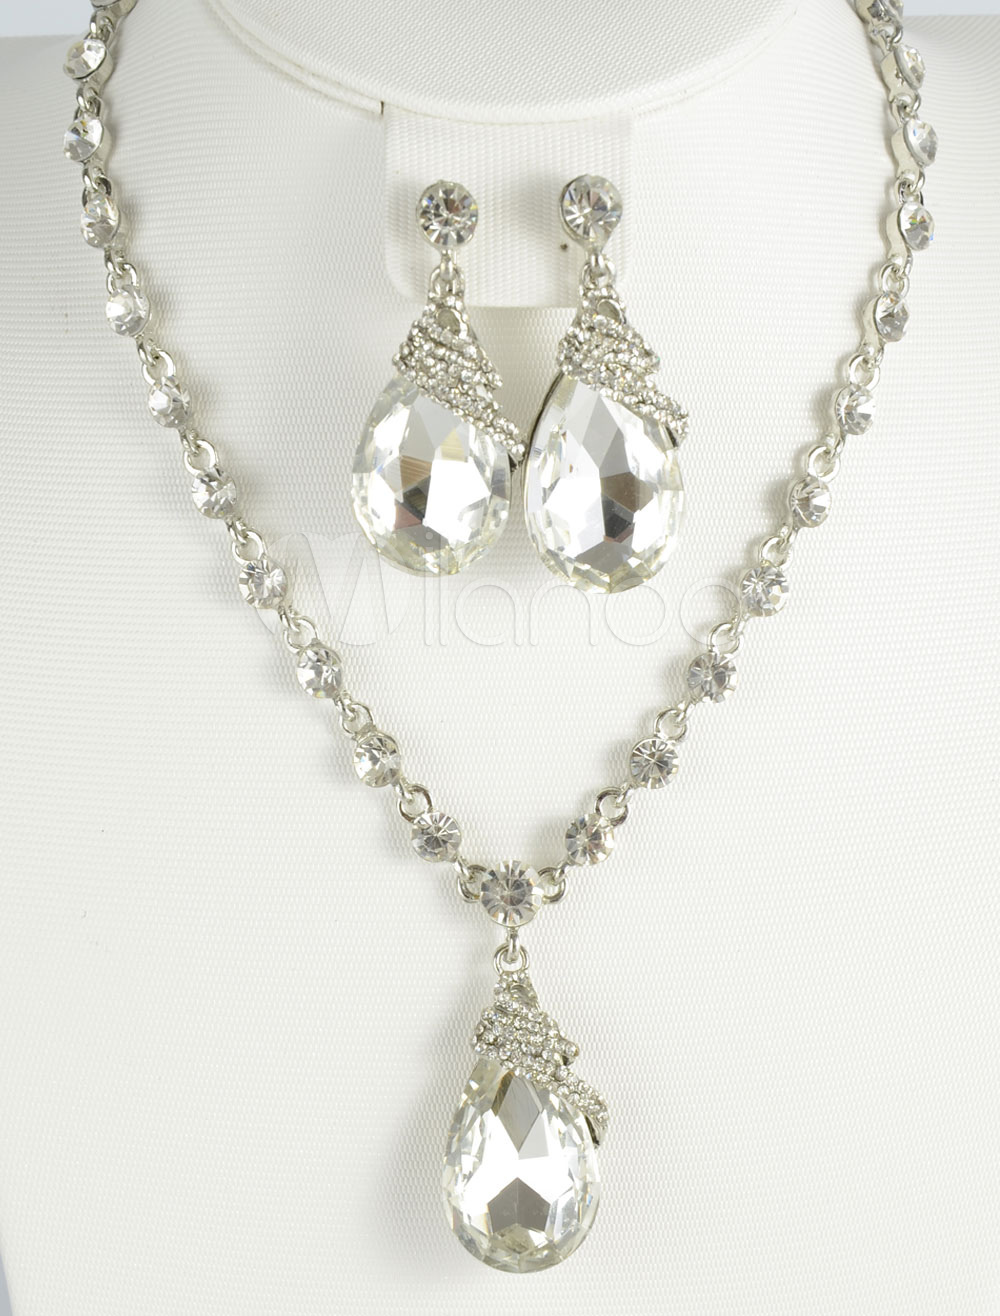 Silver Wedding Jewelry Set Rhinestone Metal Necklace and Earrings Set